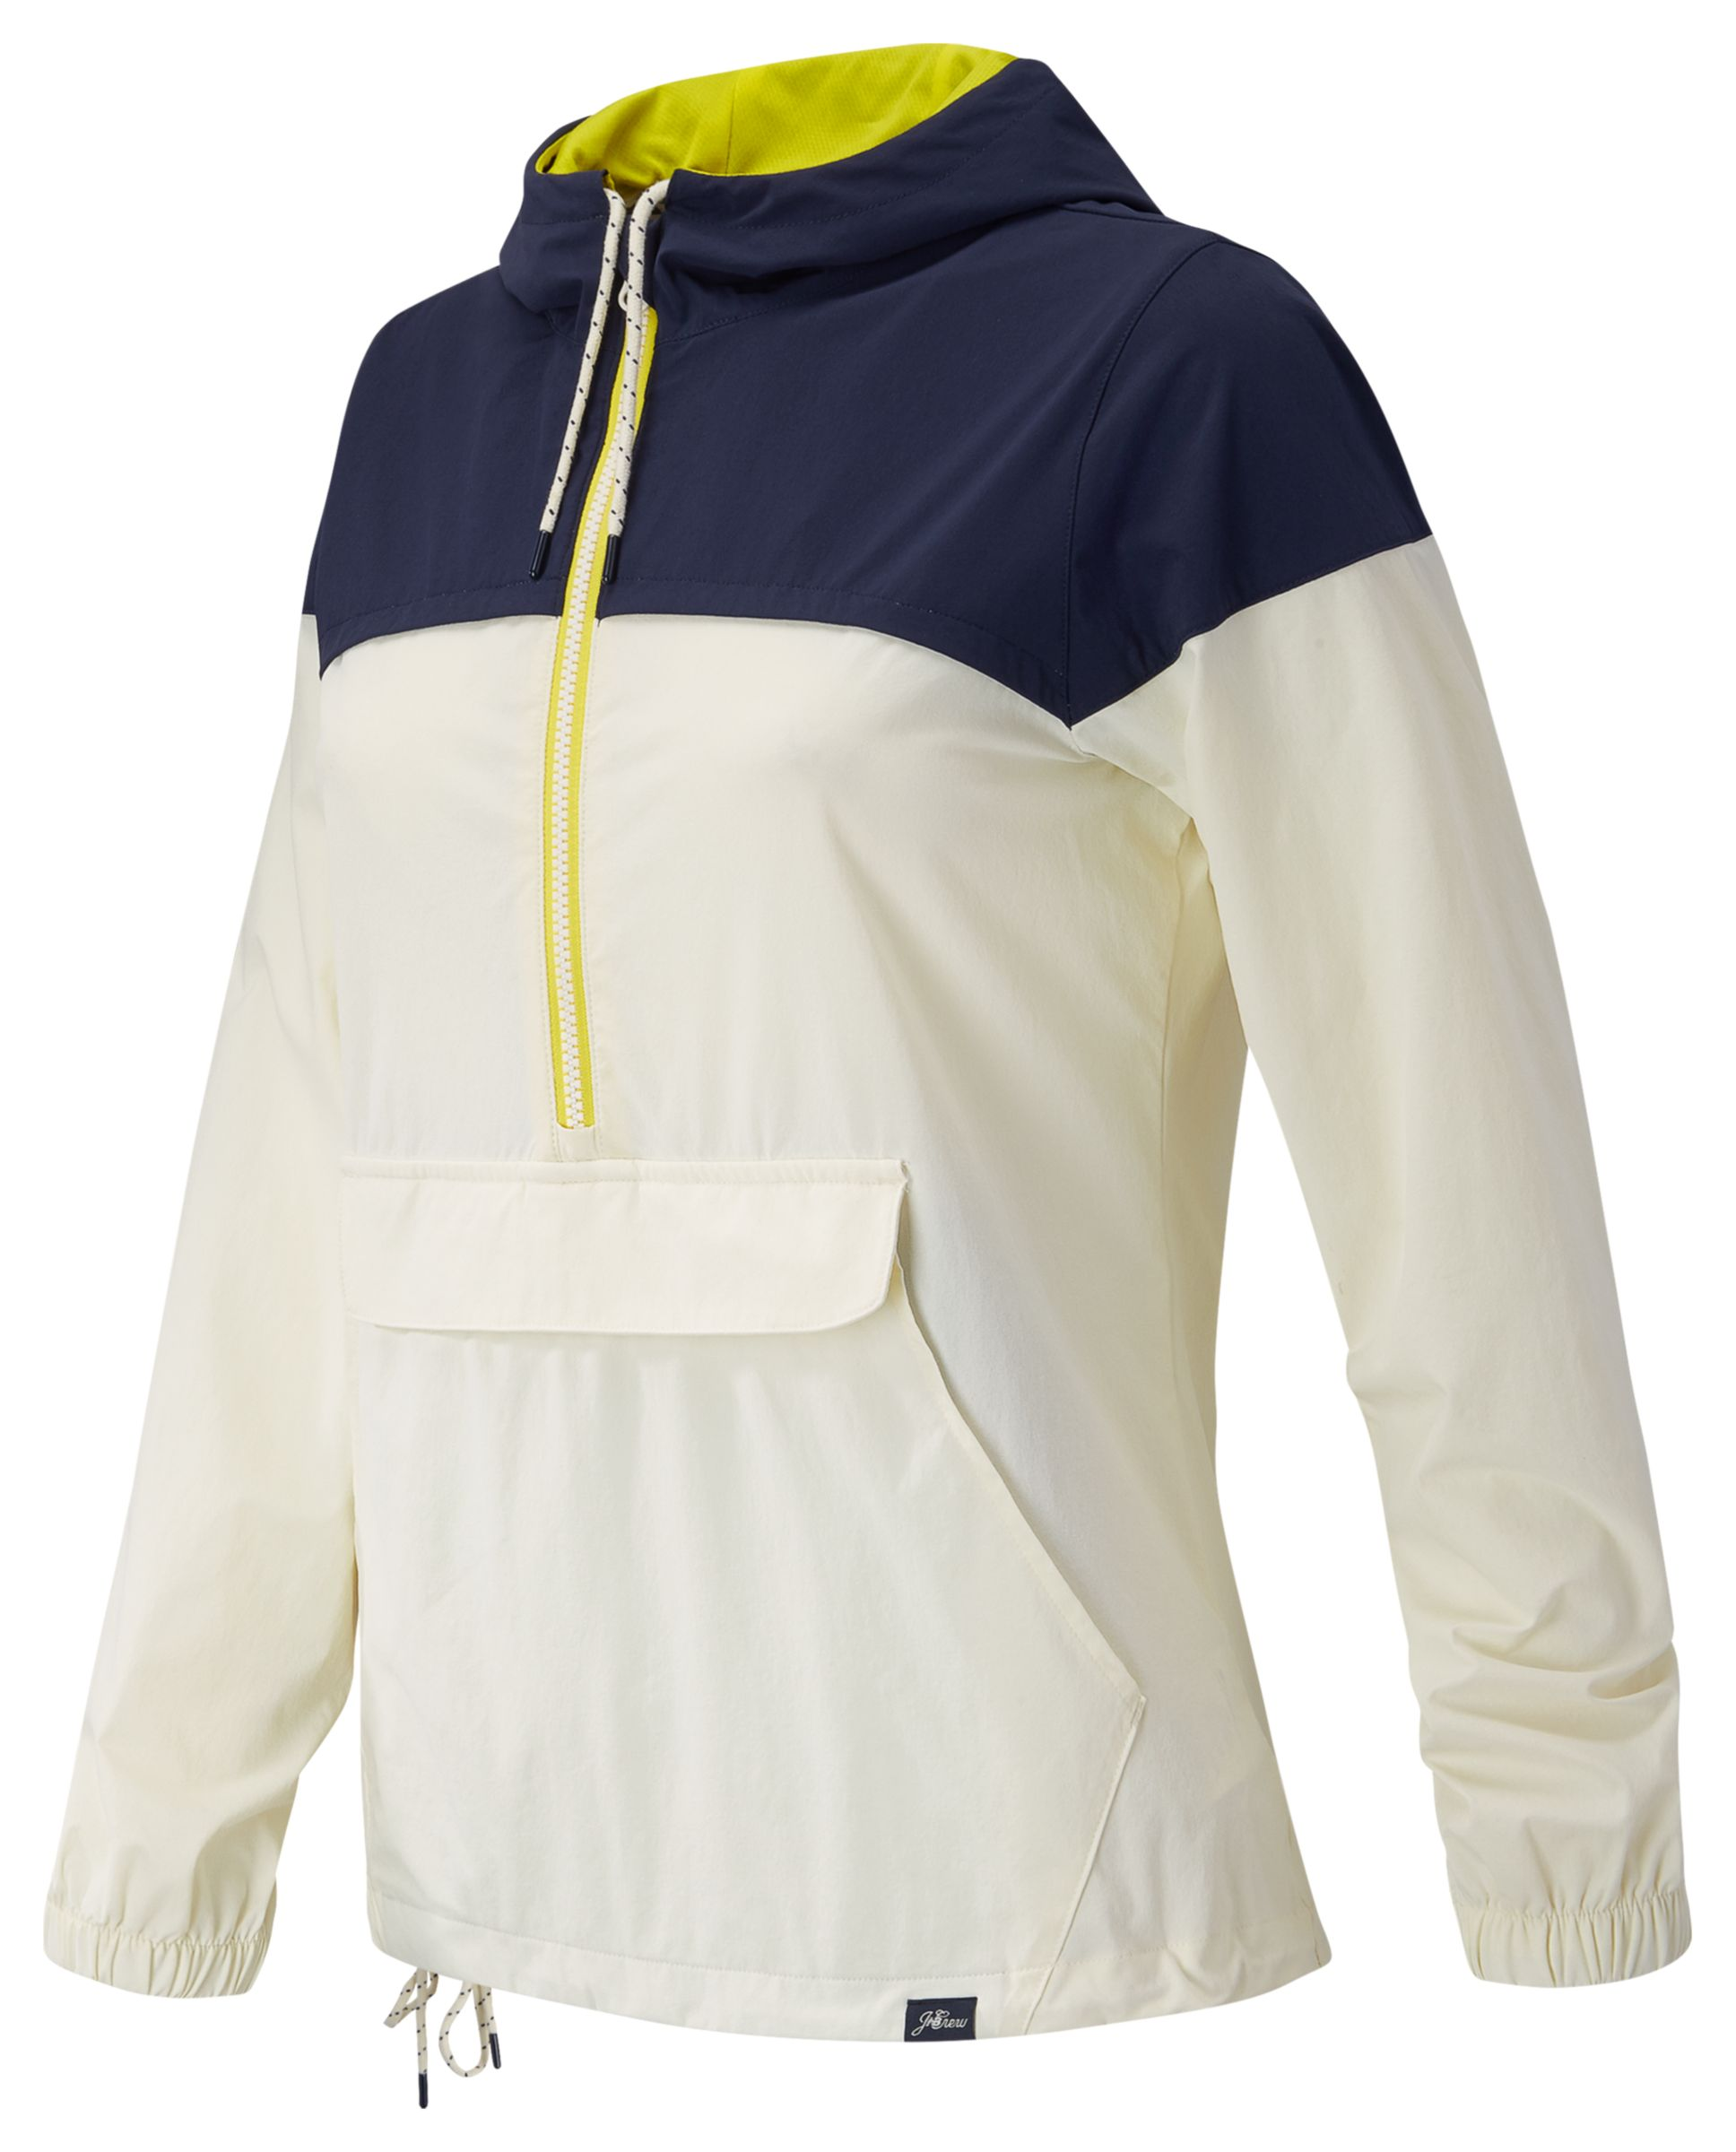 New Balance : J.Crew 90s Windbreaker : Women's Casual : WJ63559MOP